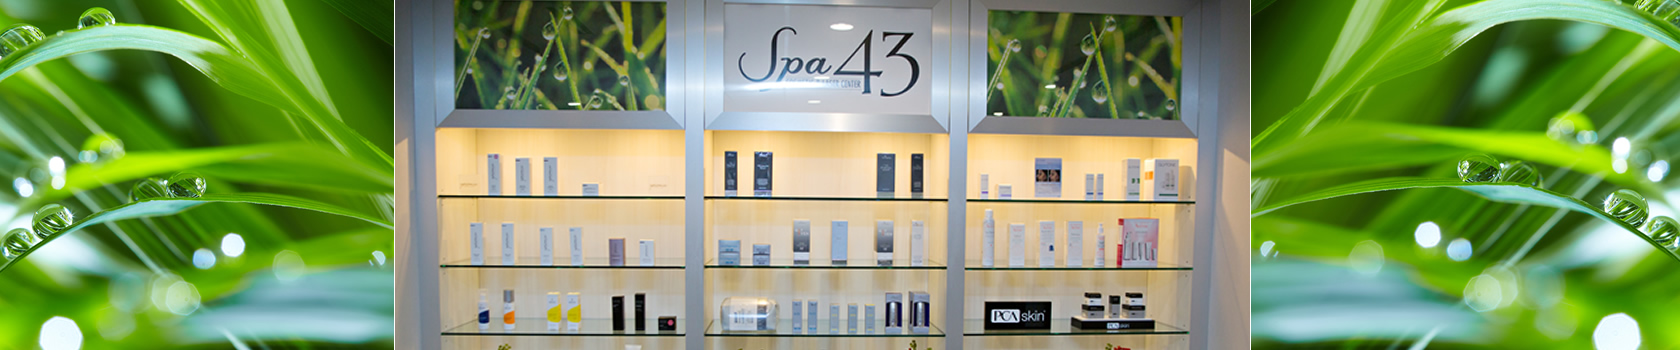 Skin Care at Spa 43